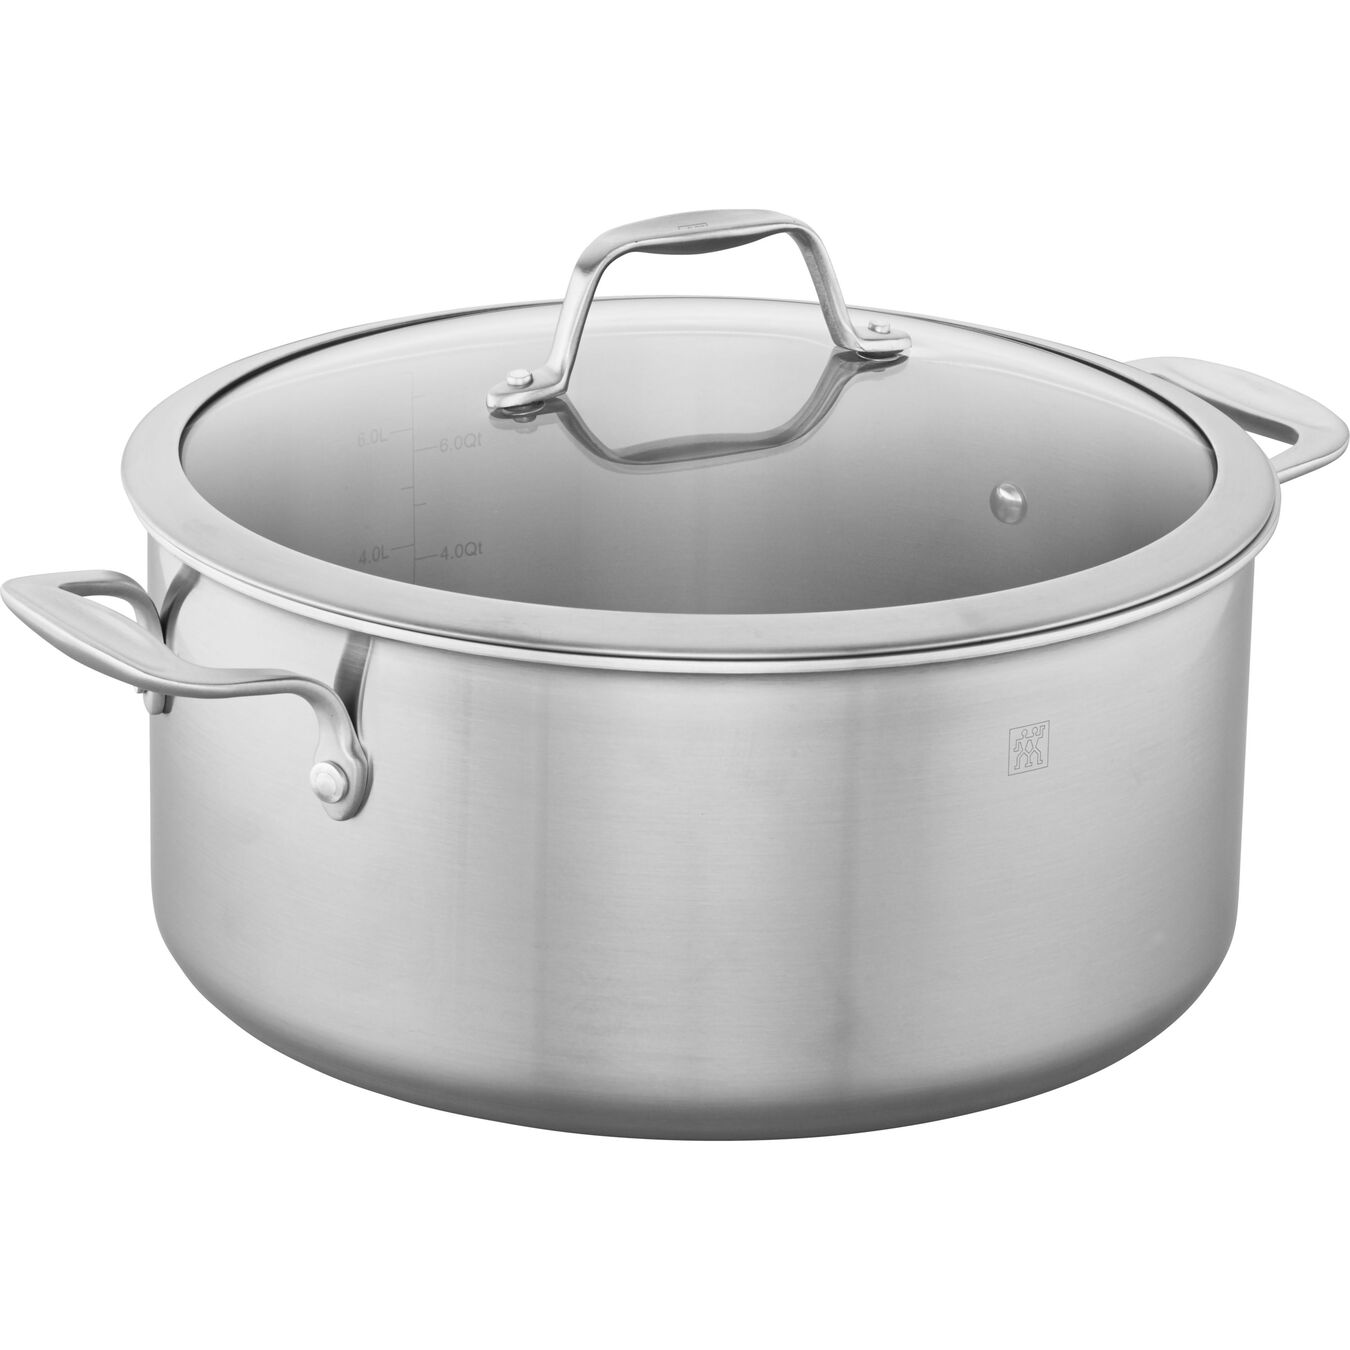 8 qt, Stainless Steel Dutch Oven,,large 1